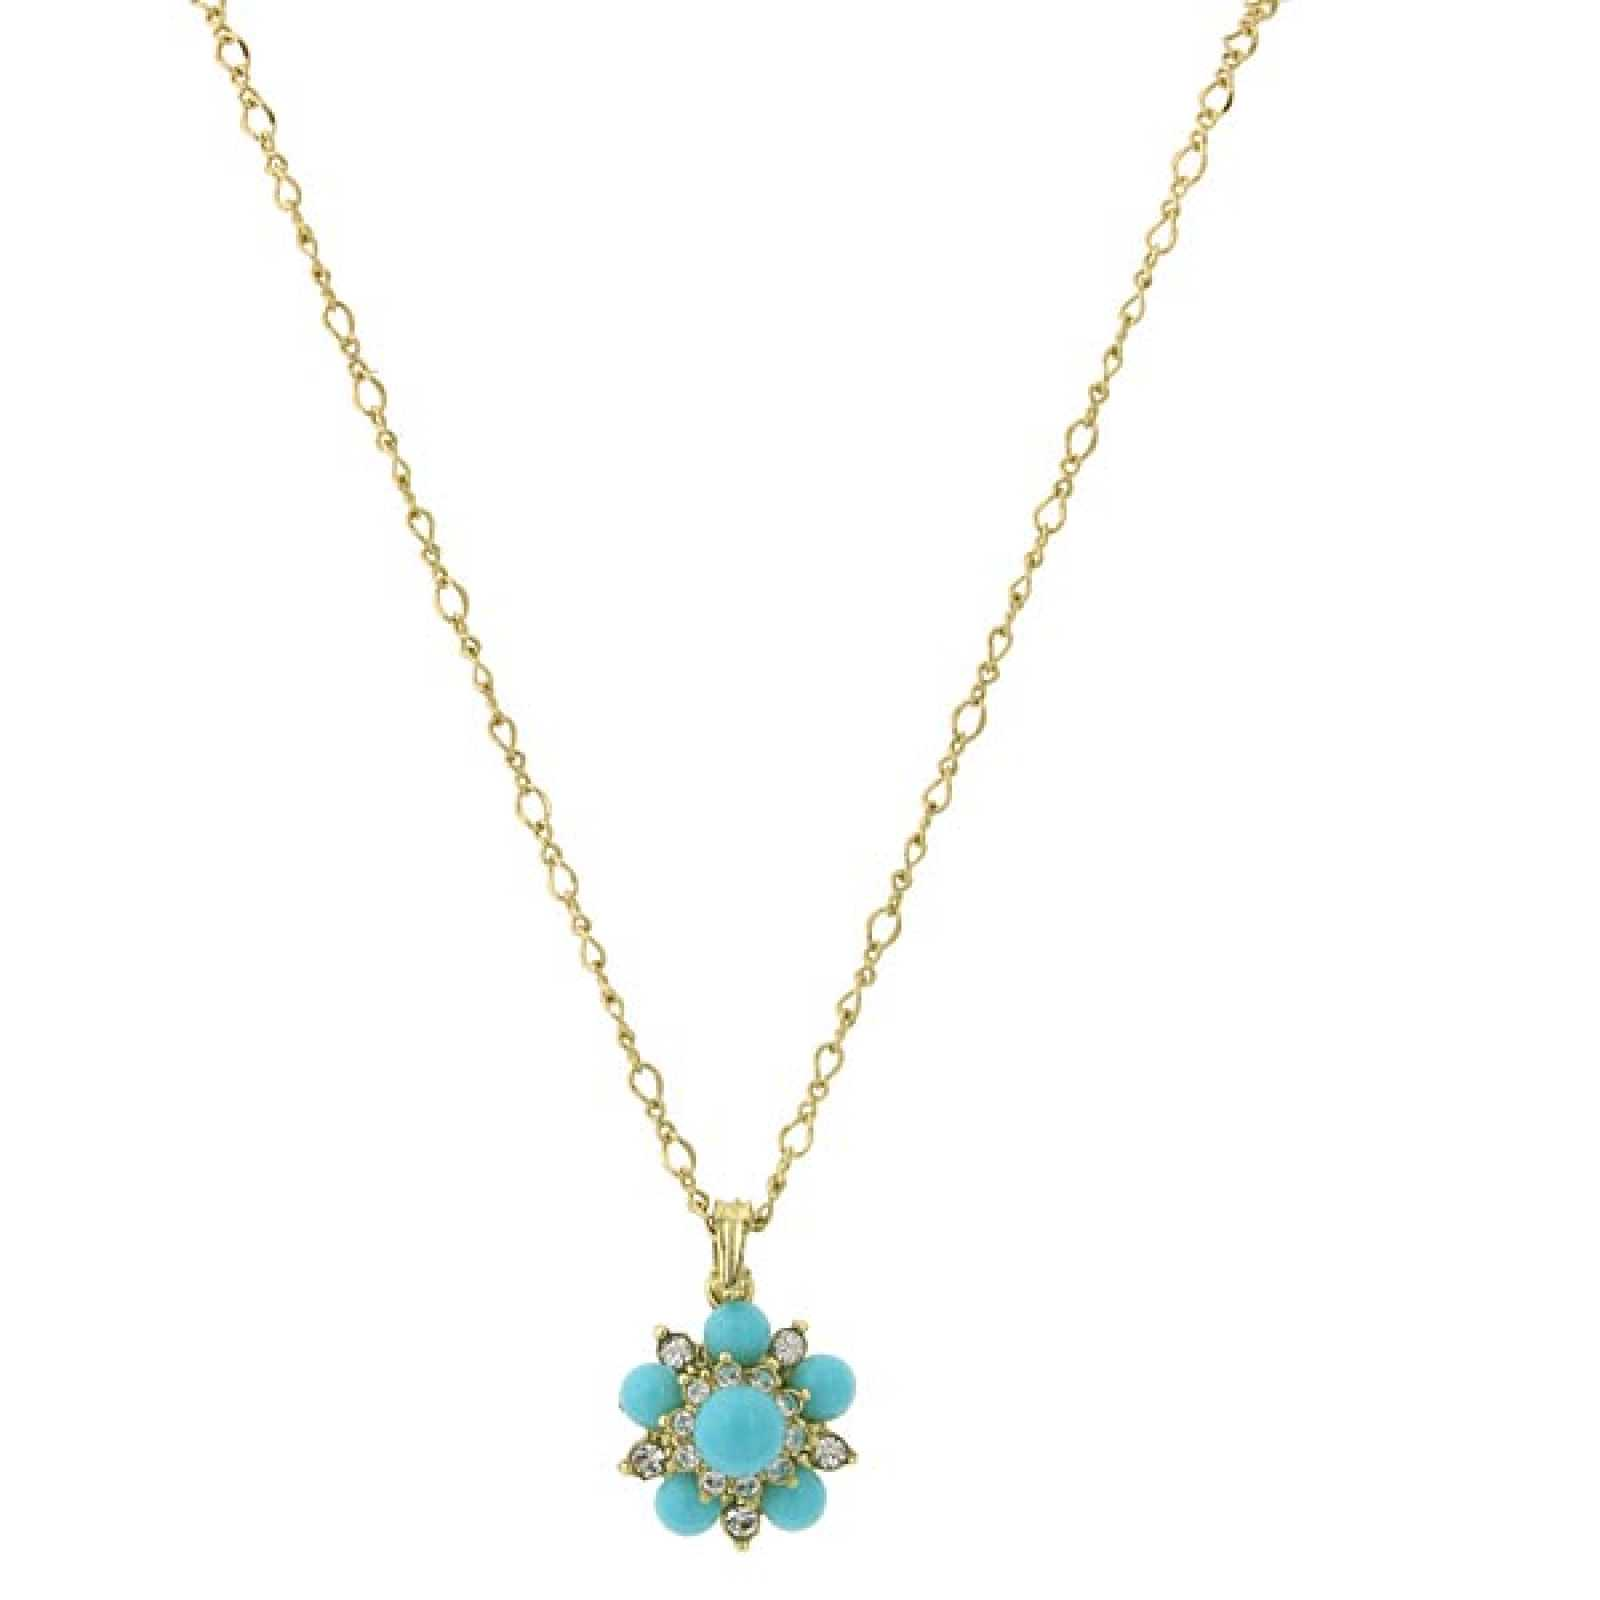 1928 Jewelry Turquoise and Crystal Floral Gold-Toned Short Necklace